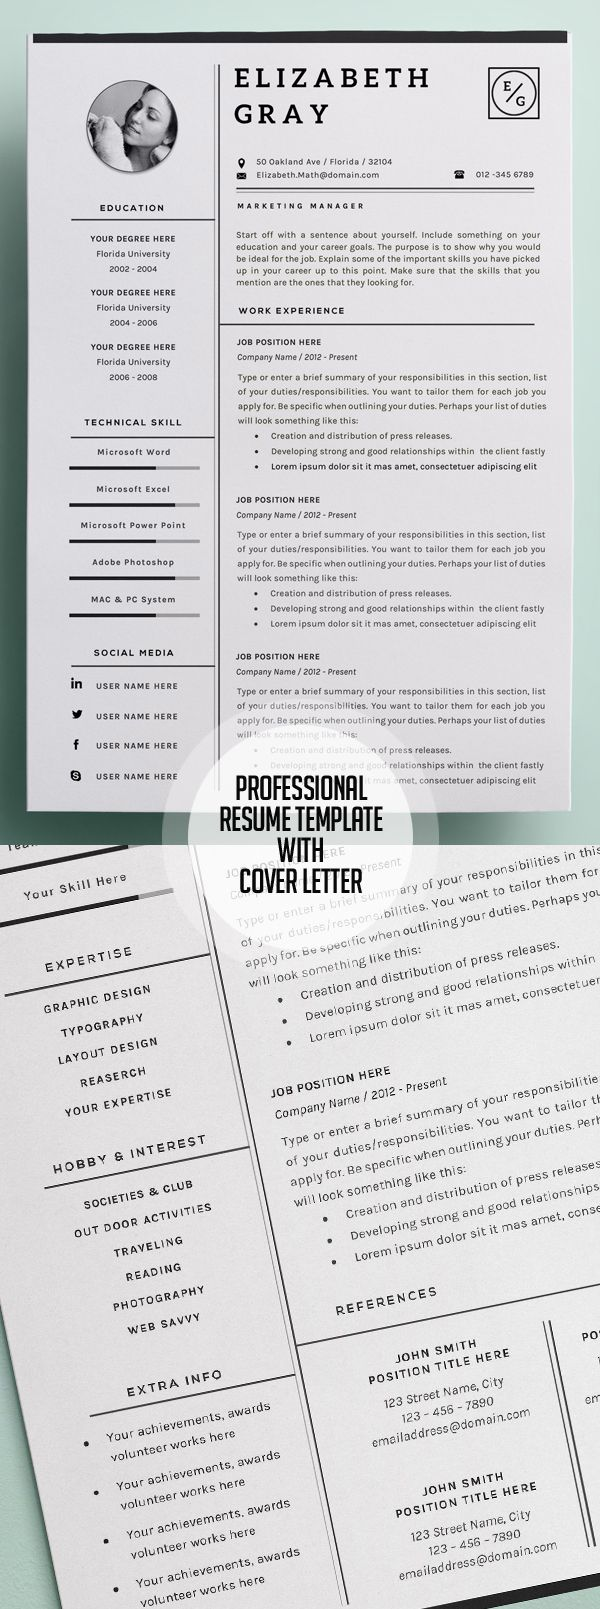 Opposenewapstandardsus  Marvelous  Resume Ideas On Pinterest  Resume Resume Templates And  With Goodlooking Professional And Modern Resume Template With Page Cover Cvtemplate With Attractive Format For Resume Also Post Resume In Addition Firefighter Resume And Technical Resume As Well As Security Resume Additionally Mechanic Resume From Pinterestcom With Opposenewapstandardsus  Goodlooking  Resume Ideas On Pinterest  Resume Resume Templates And  With Attractive Professional And Modern Resume Template With Page Cover Cvtemplate And Marvelous Format For Resume Also Post Resume In Addition Firefighter Resume From Pinterestcom